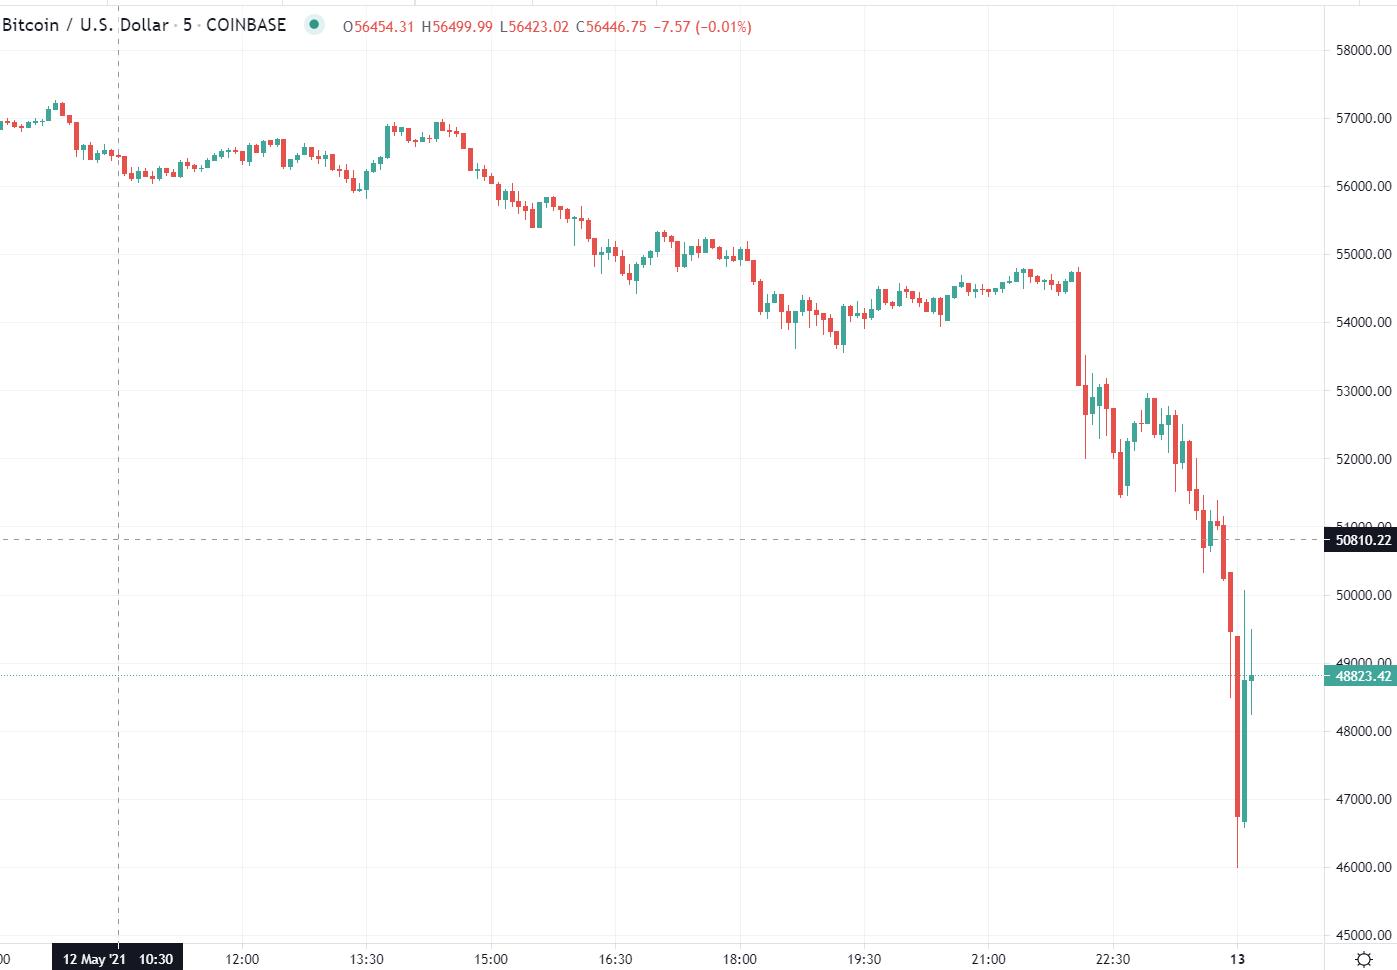 There are reports that Coinbase is down for some users.